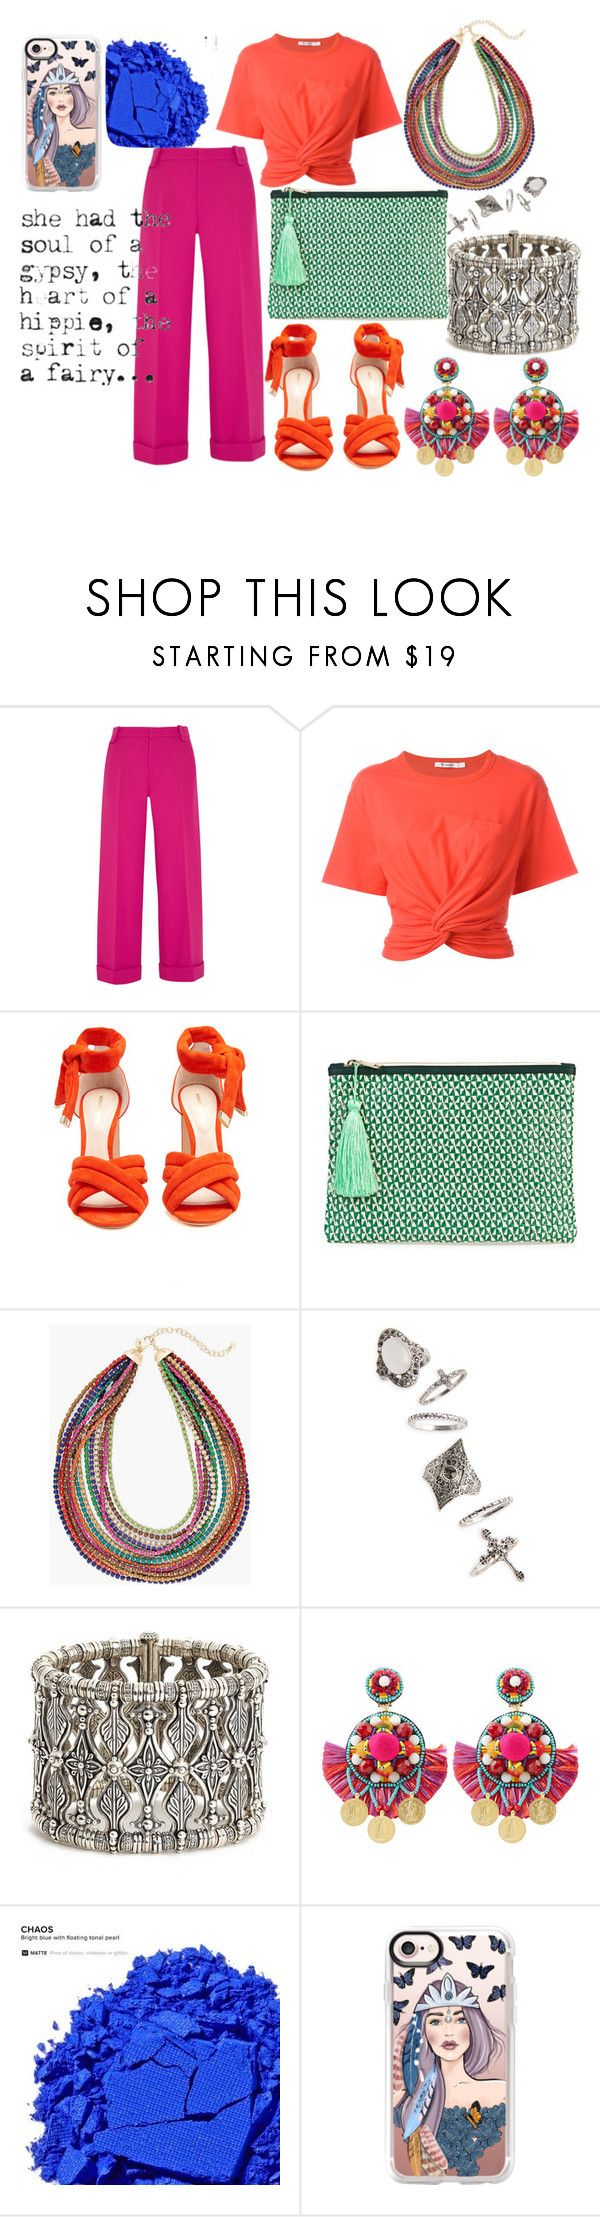 """Modern gypsy"" by hosseini-razie ❤ liked on Polyvore featuring Roland Mouret, T By Alexander Wang, Nicholas Kirkwood, Rae Feather, Chico's, Topshop, Konstantino, Ranjana Khan, Urban Decay and Casetify"